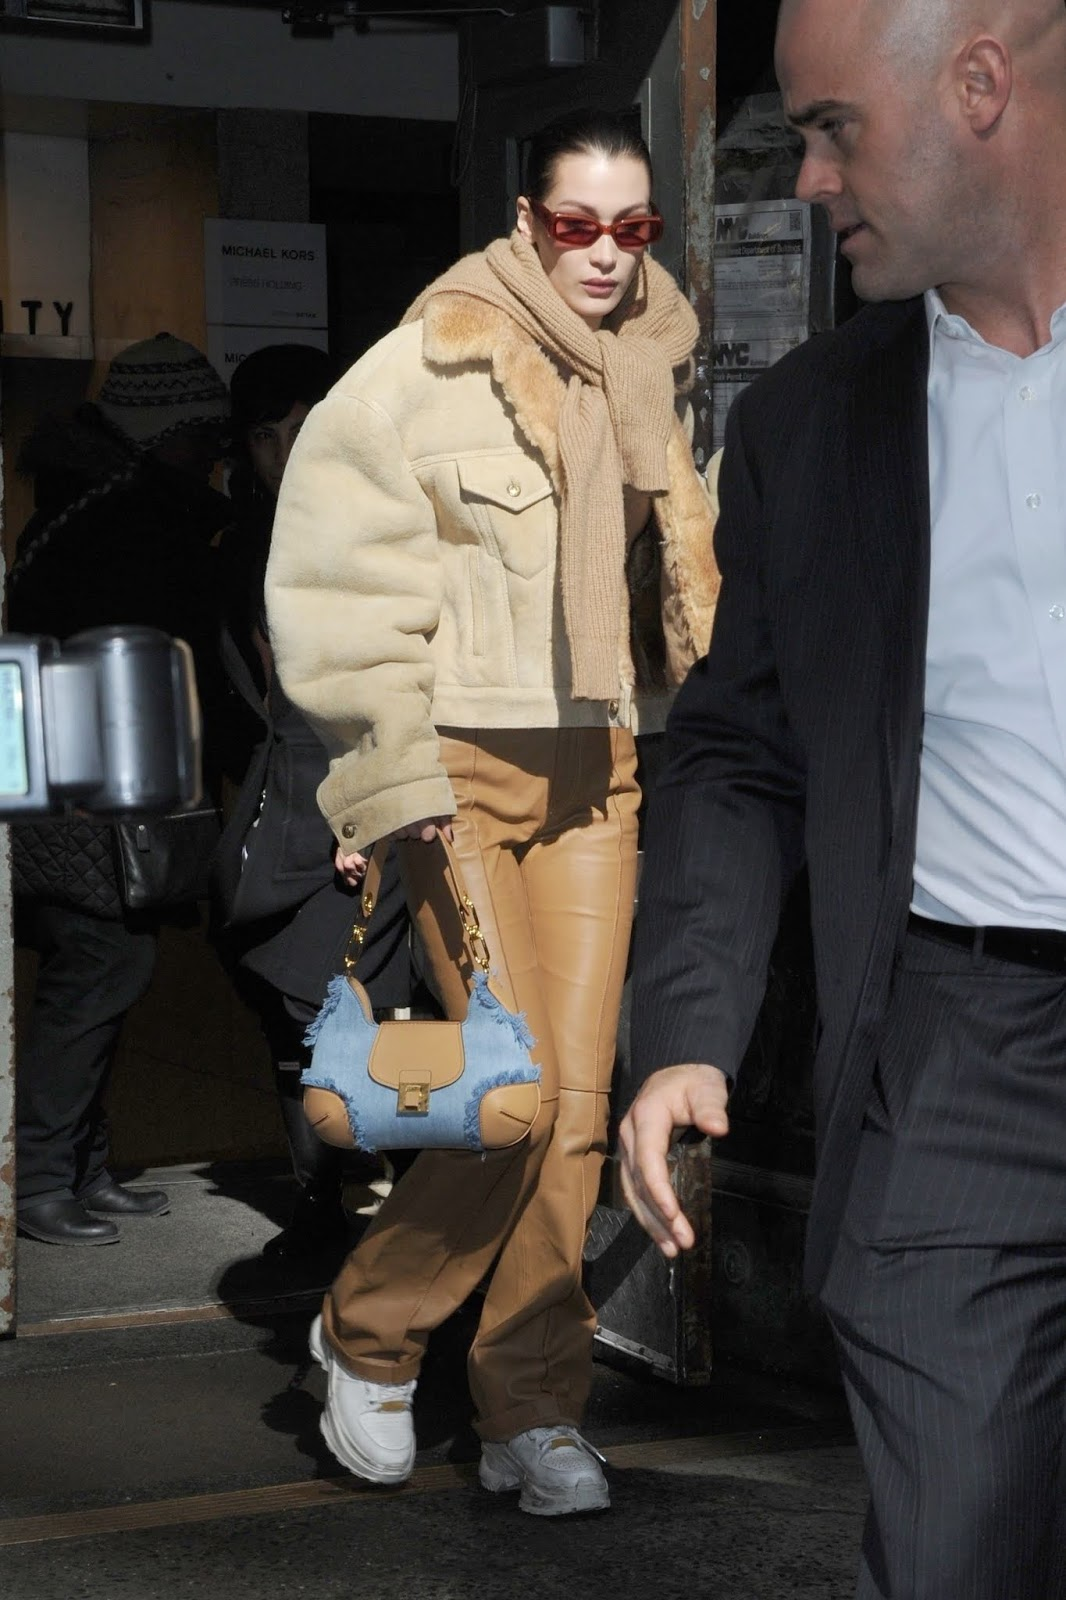 Bella Hadid - Outside Michael Kors fashion show during NYFW in NYC - 02/12/2019